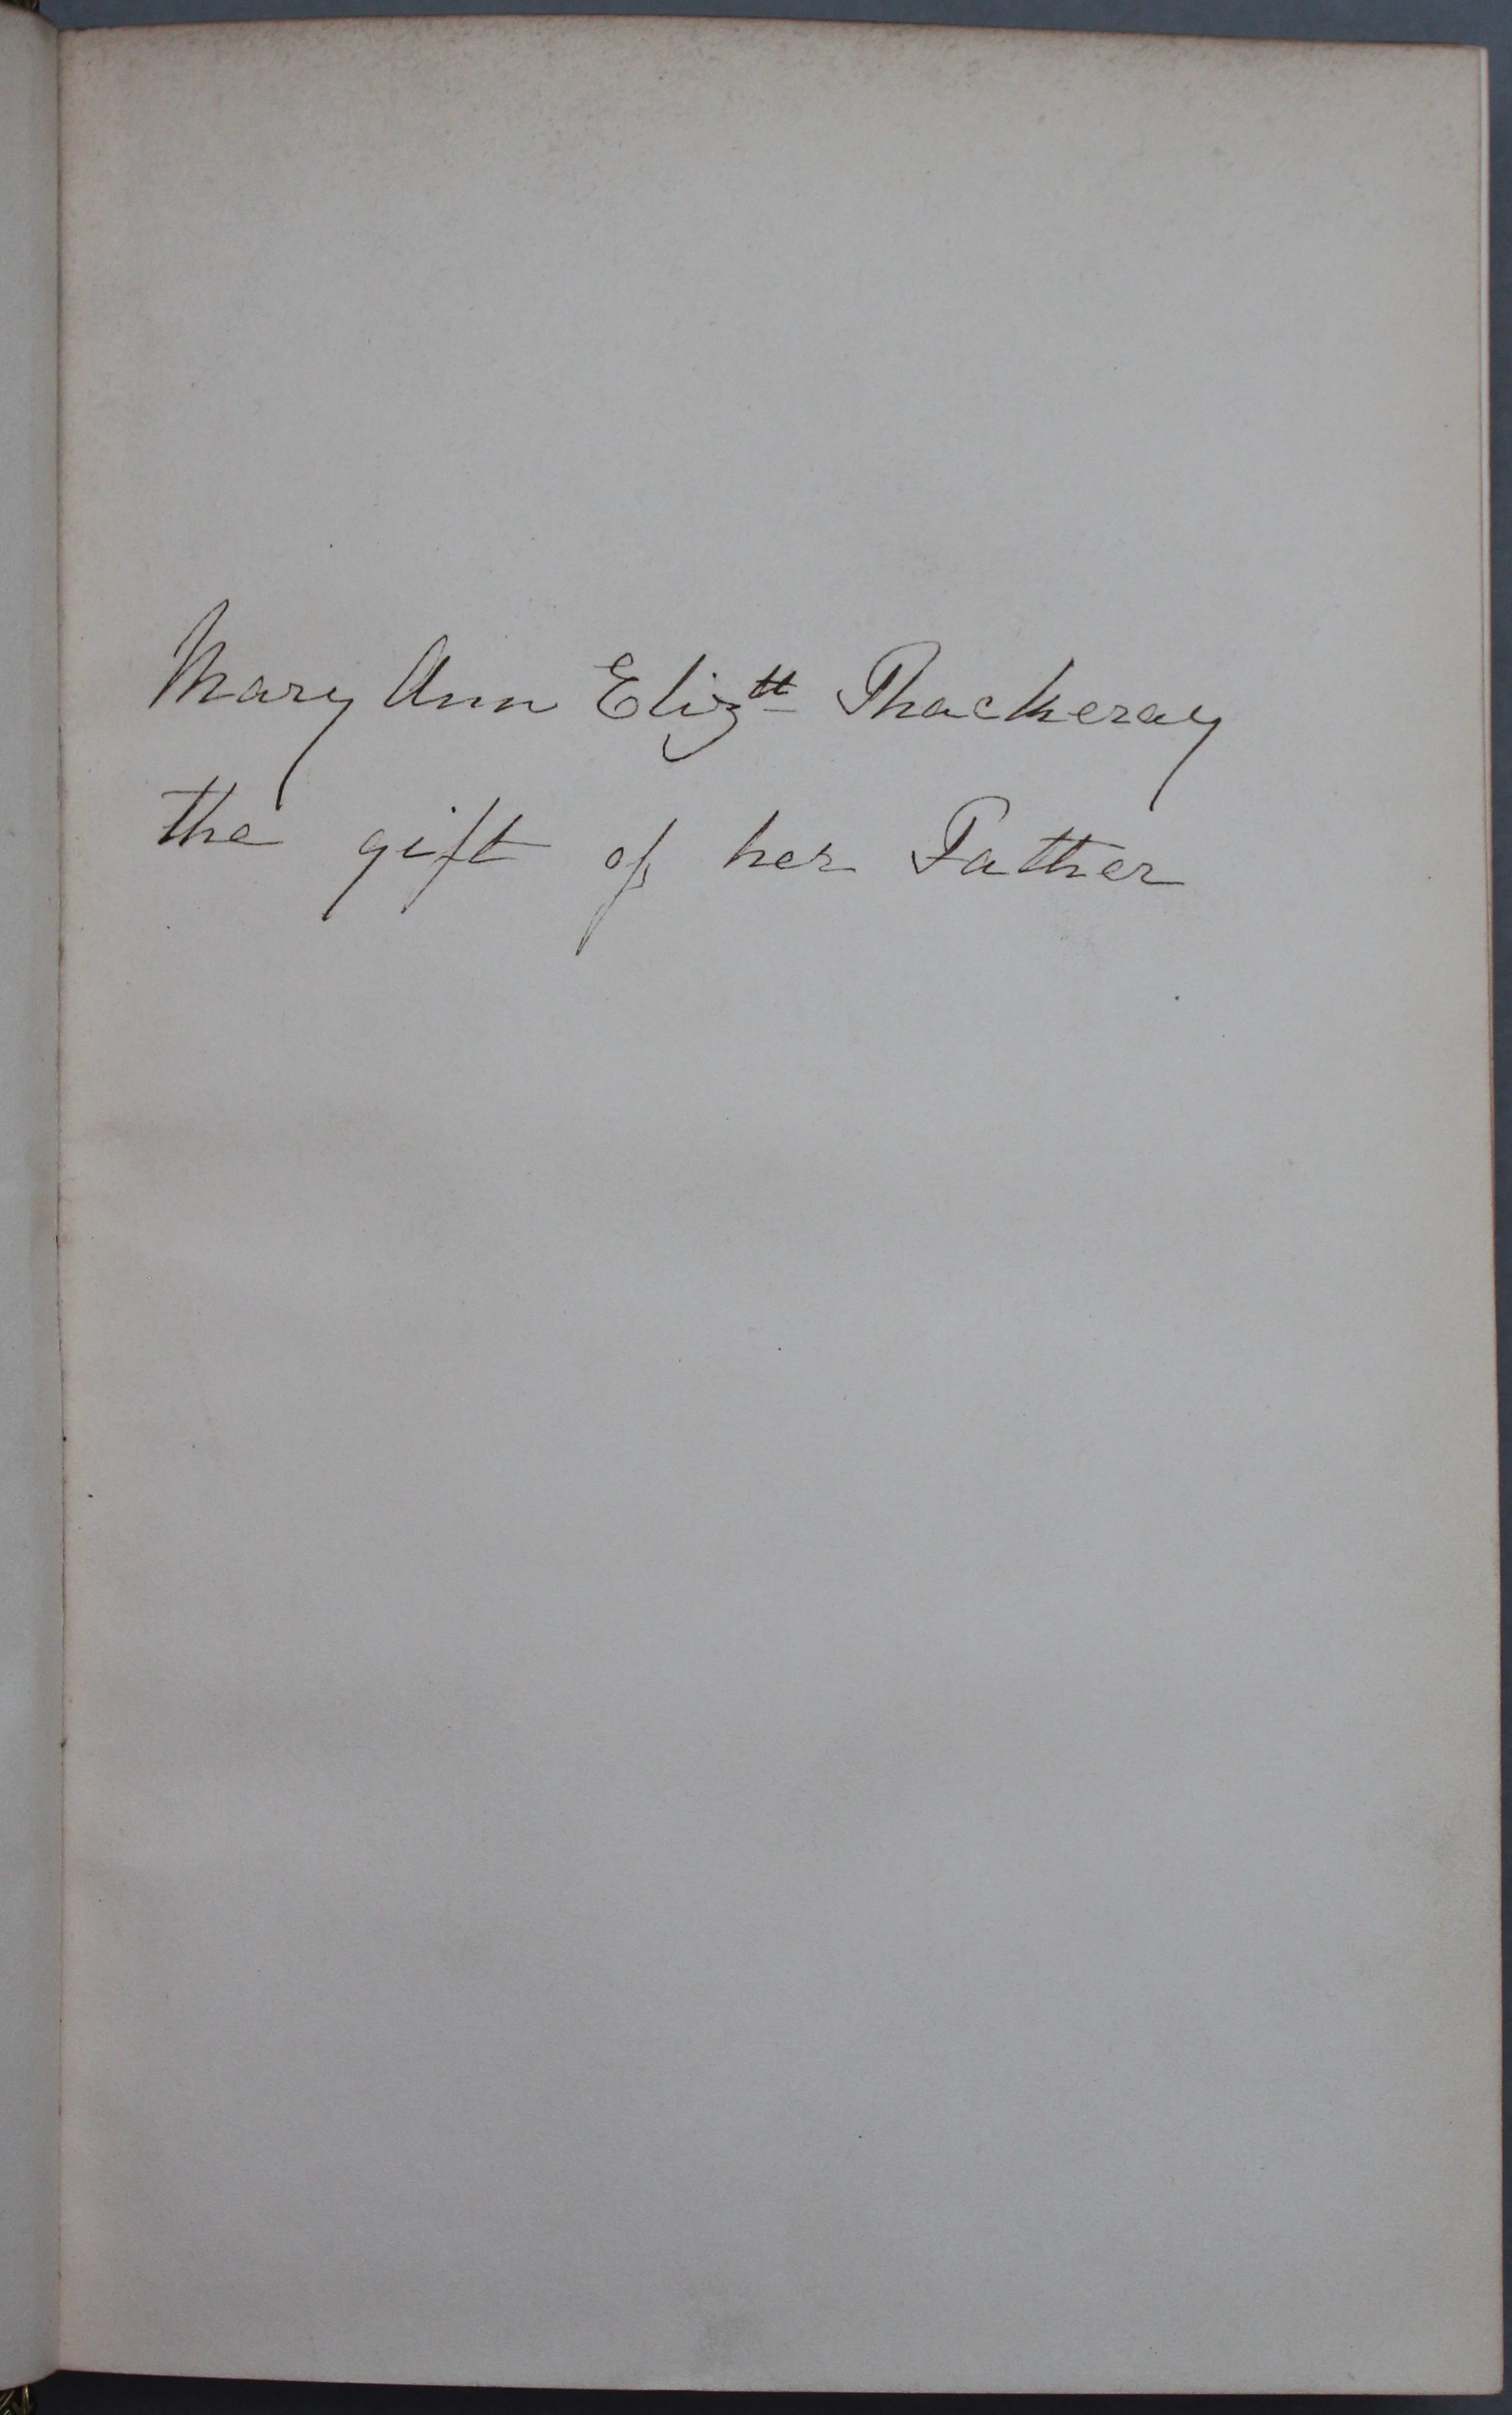 The Family Shakespeare was a gift to Mary Ann Elizabeth Thackeray from her father (Thackeray.J.63.1)